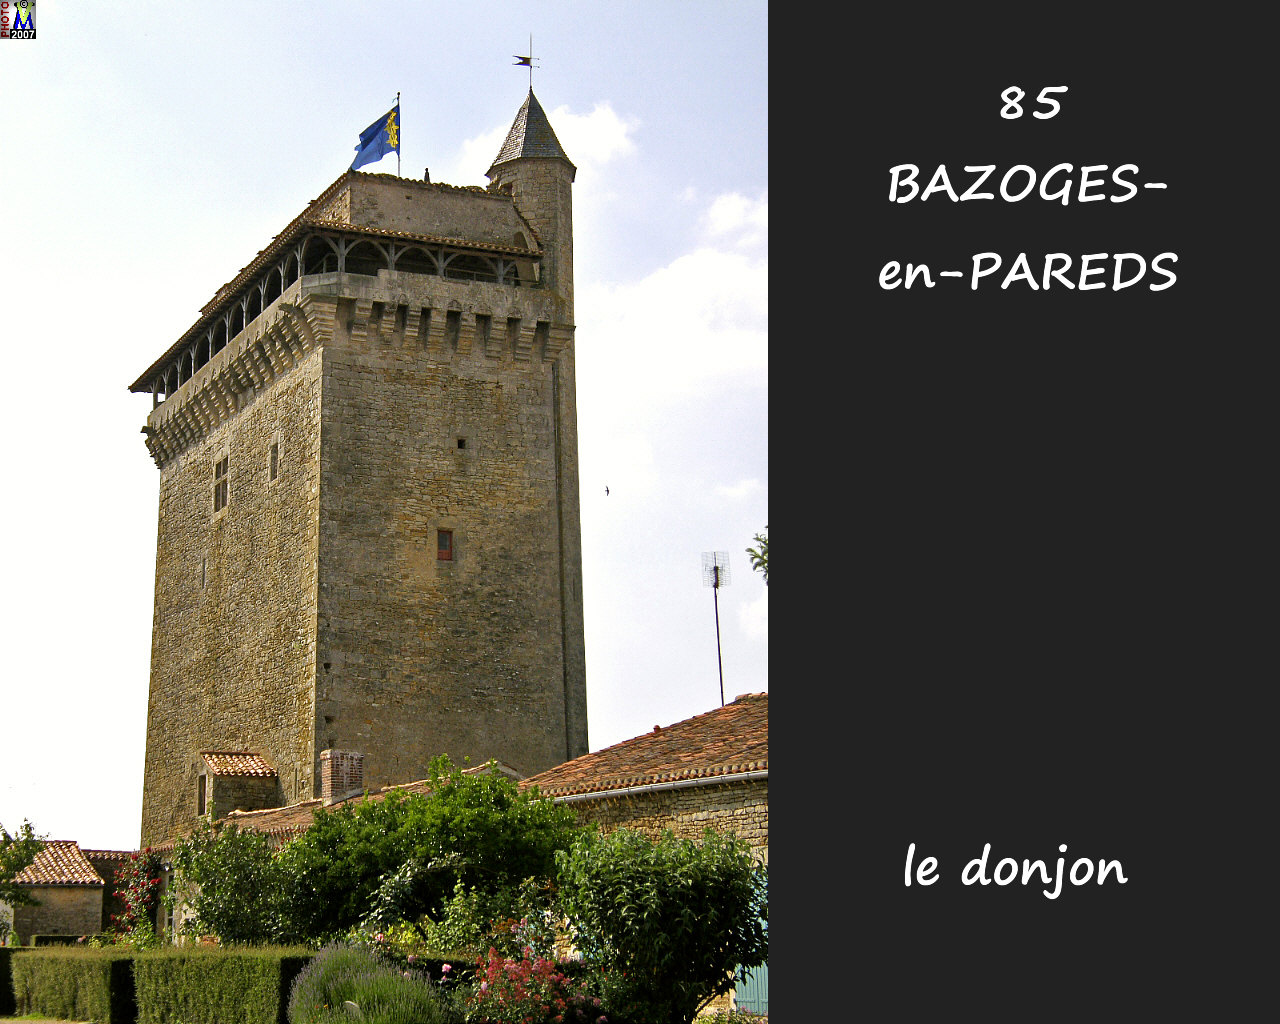 85BAZOGES-PAREDS_donjon_114.jpg